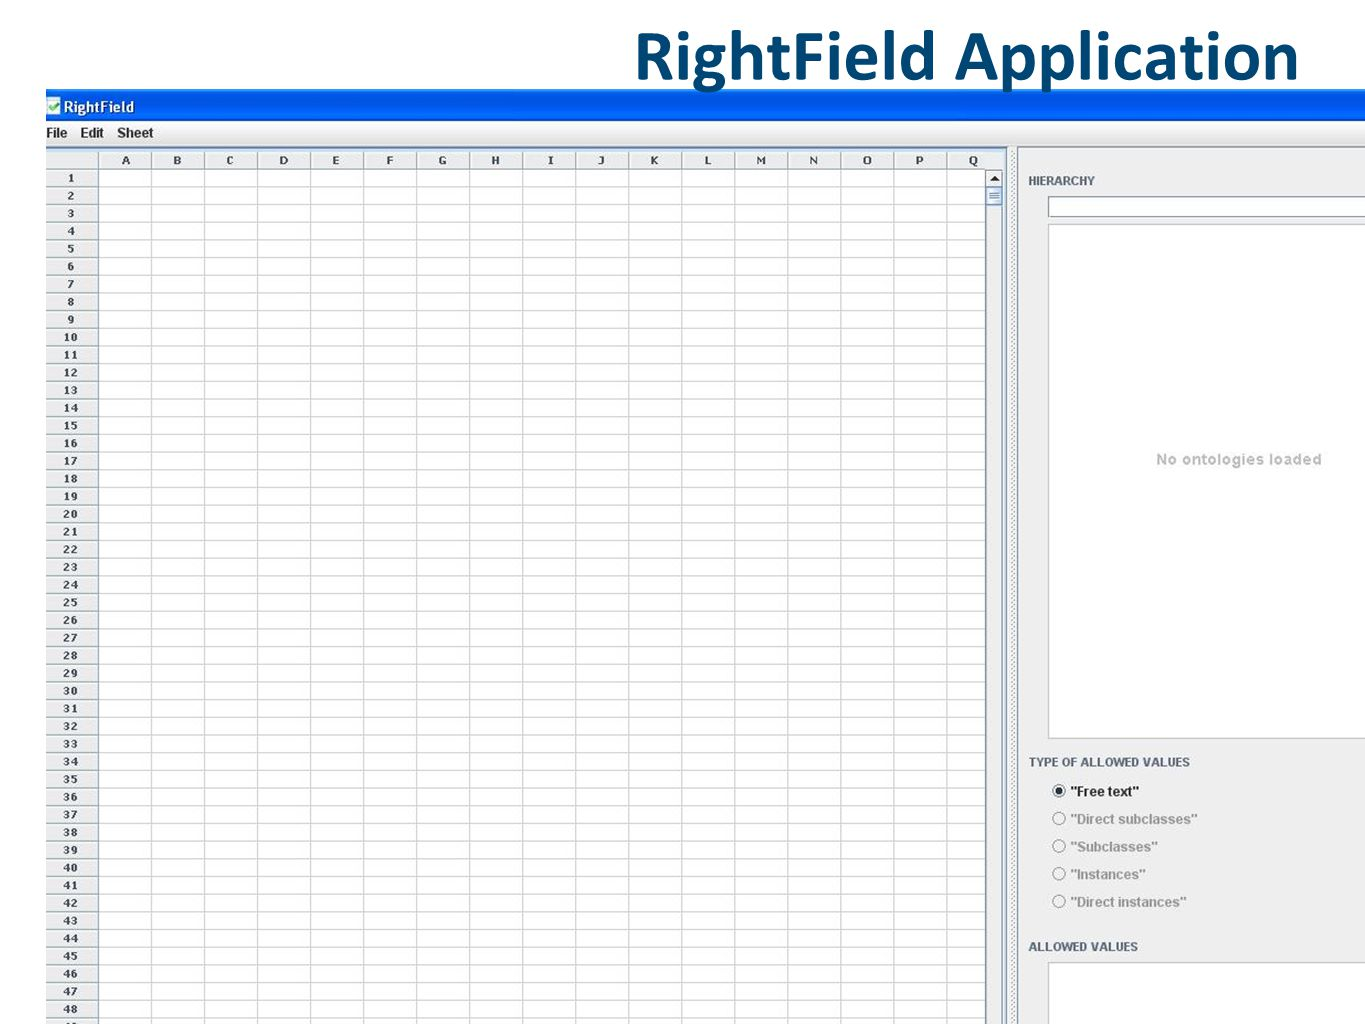 RightField Application